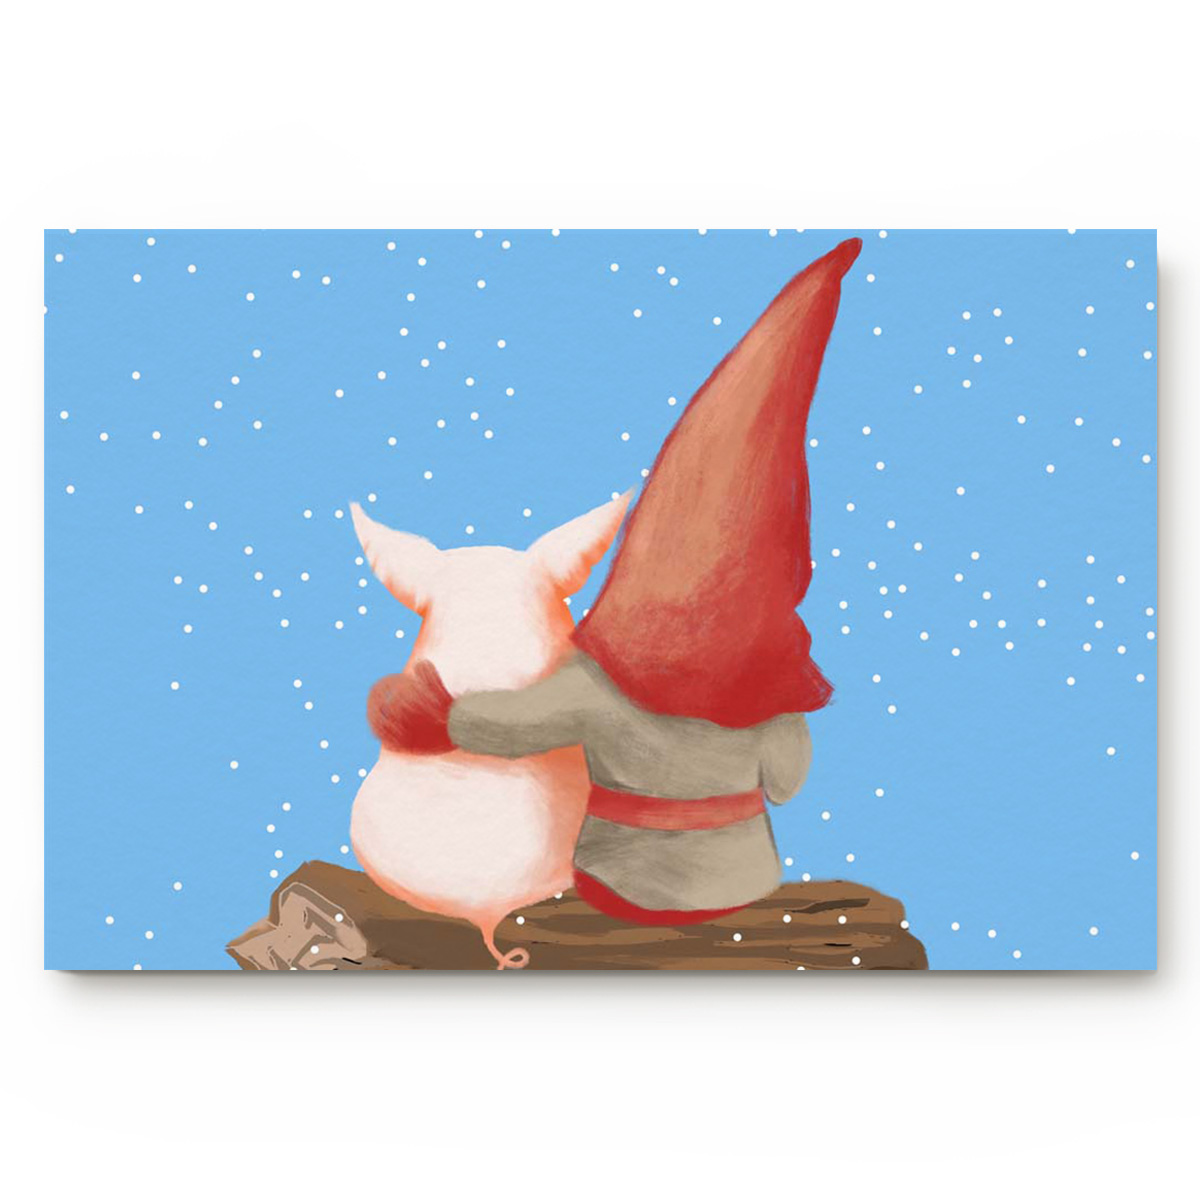 Gnome Pig Snowing Stakes Bathroom Kitchen Living Room Carpet Doormat Home Decor Non Slip Floor Mat Mat Aliexpress